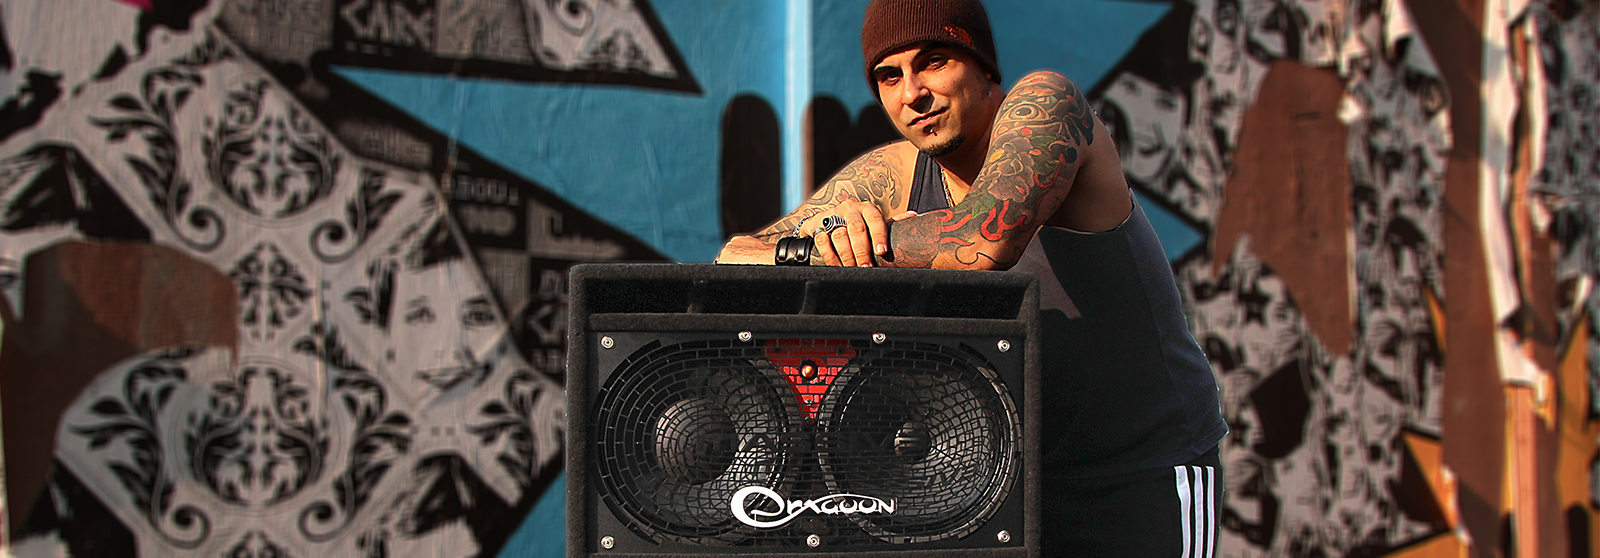 Dragoon - The Custom Speaker - DADO-NERI_20160225195928511691.jpg